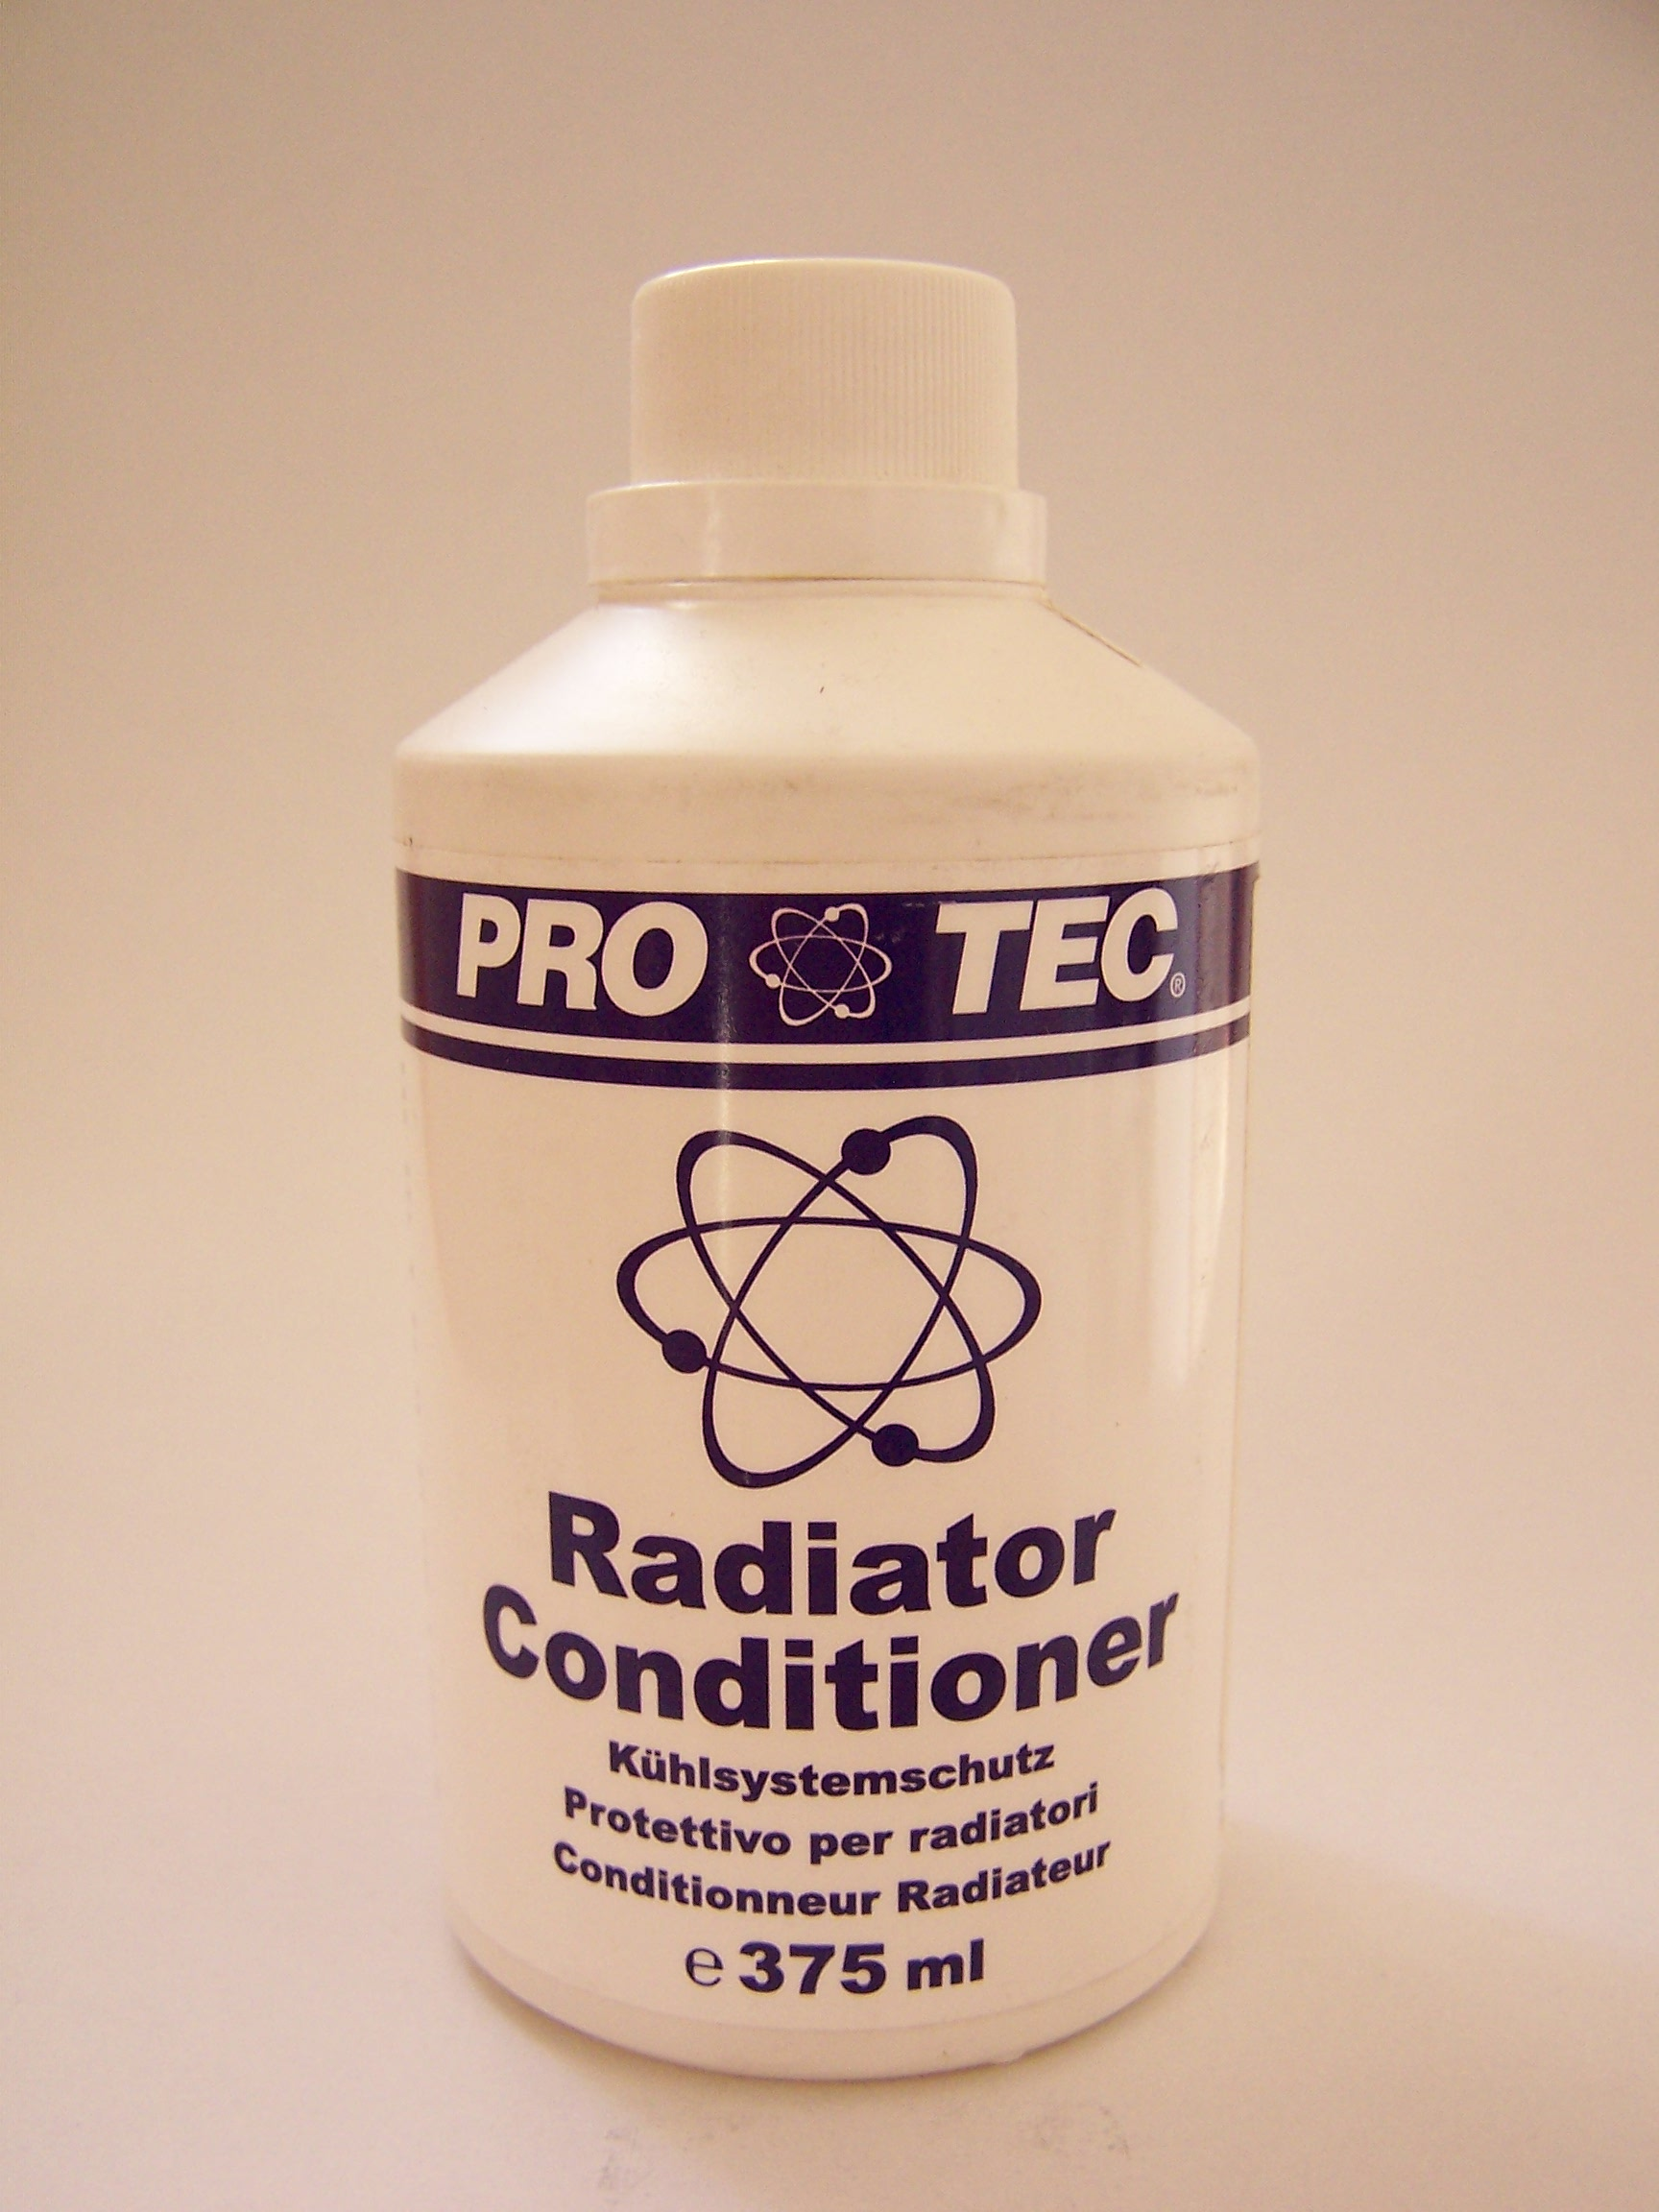 PRO-TEC Radiator conditioner